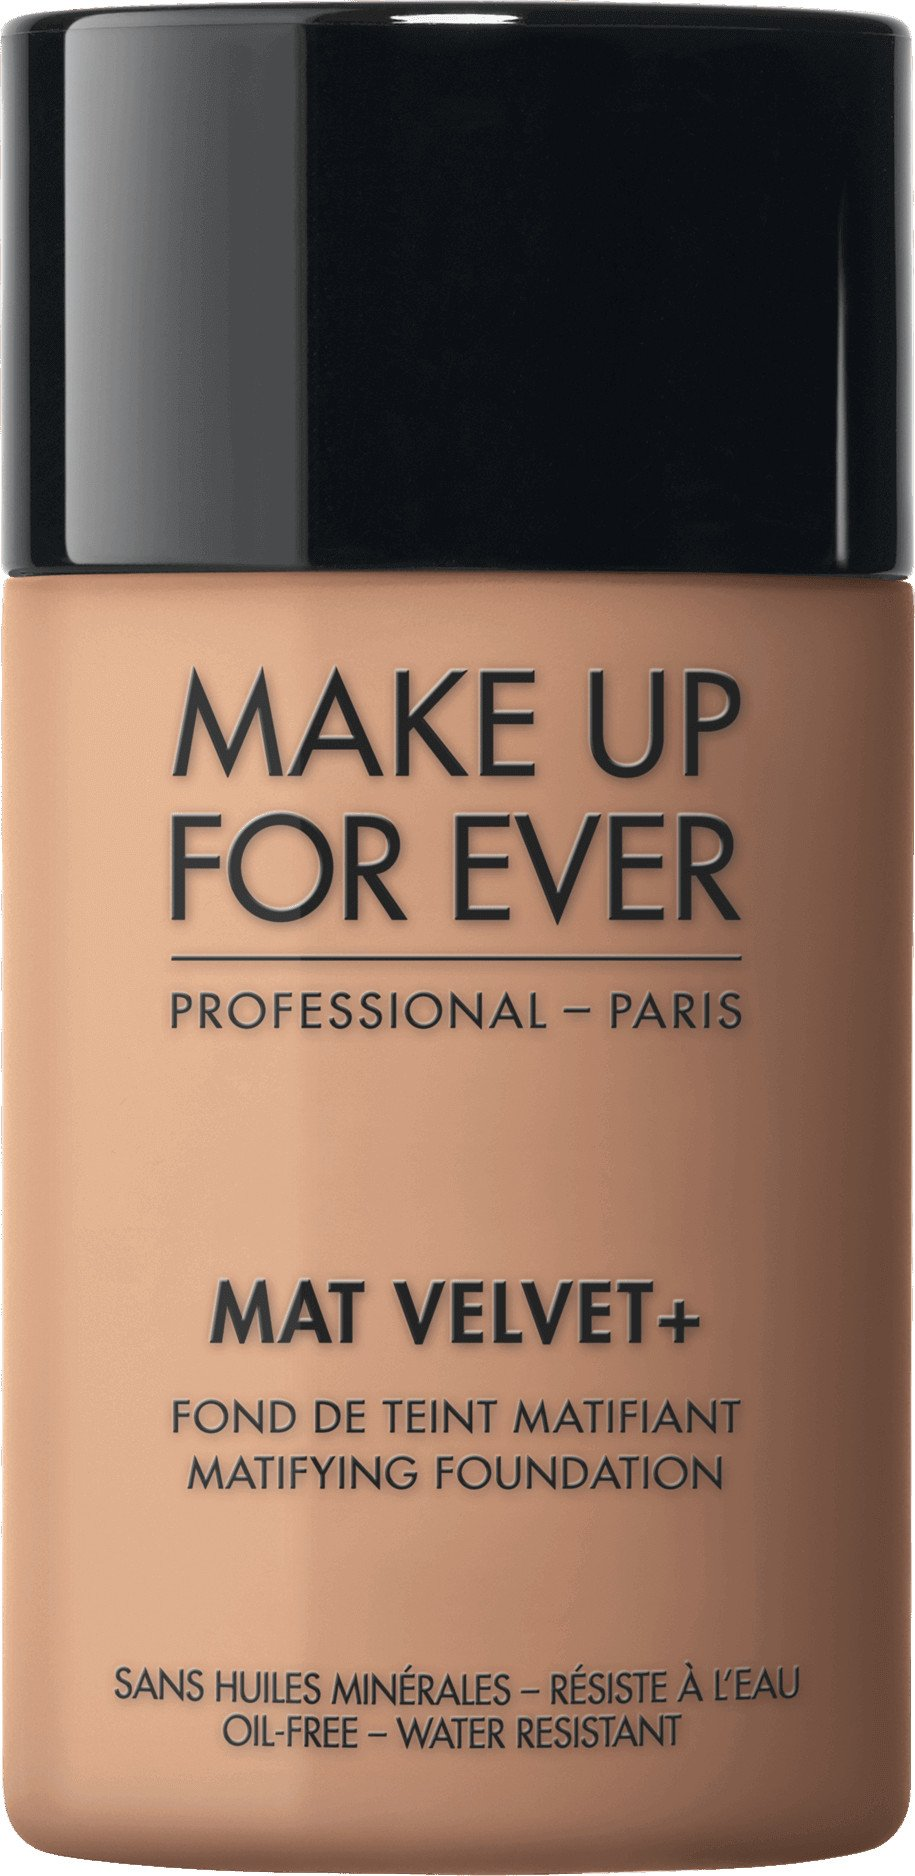 MAKE UP FOR EVER Mat Velvet + Matifying Foundation No. 40 - Natural Beige 1.01 oz